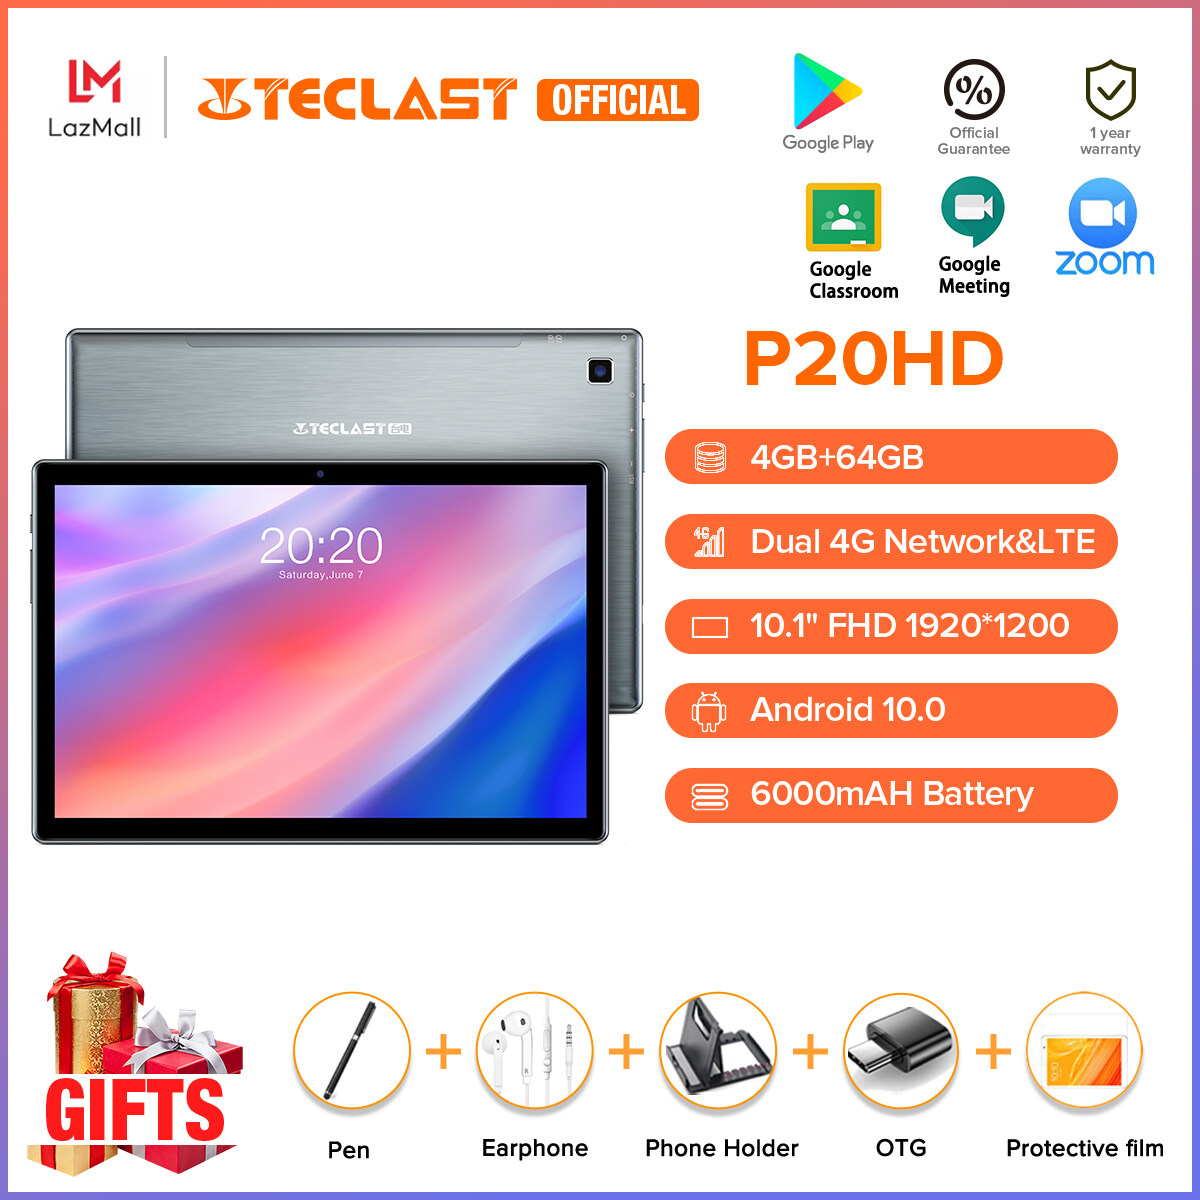 【Hot Sale】Teclast Official P20HD 10.1 Inch Tablet Android 10.0 OS 4GB RAM 64GB ROM 4G Phone Call Full HD Screen 1920×1200 SC9863A Octa Core 6000mAh Battery AI Speed-up Tablets PC Dual Wifi